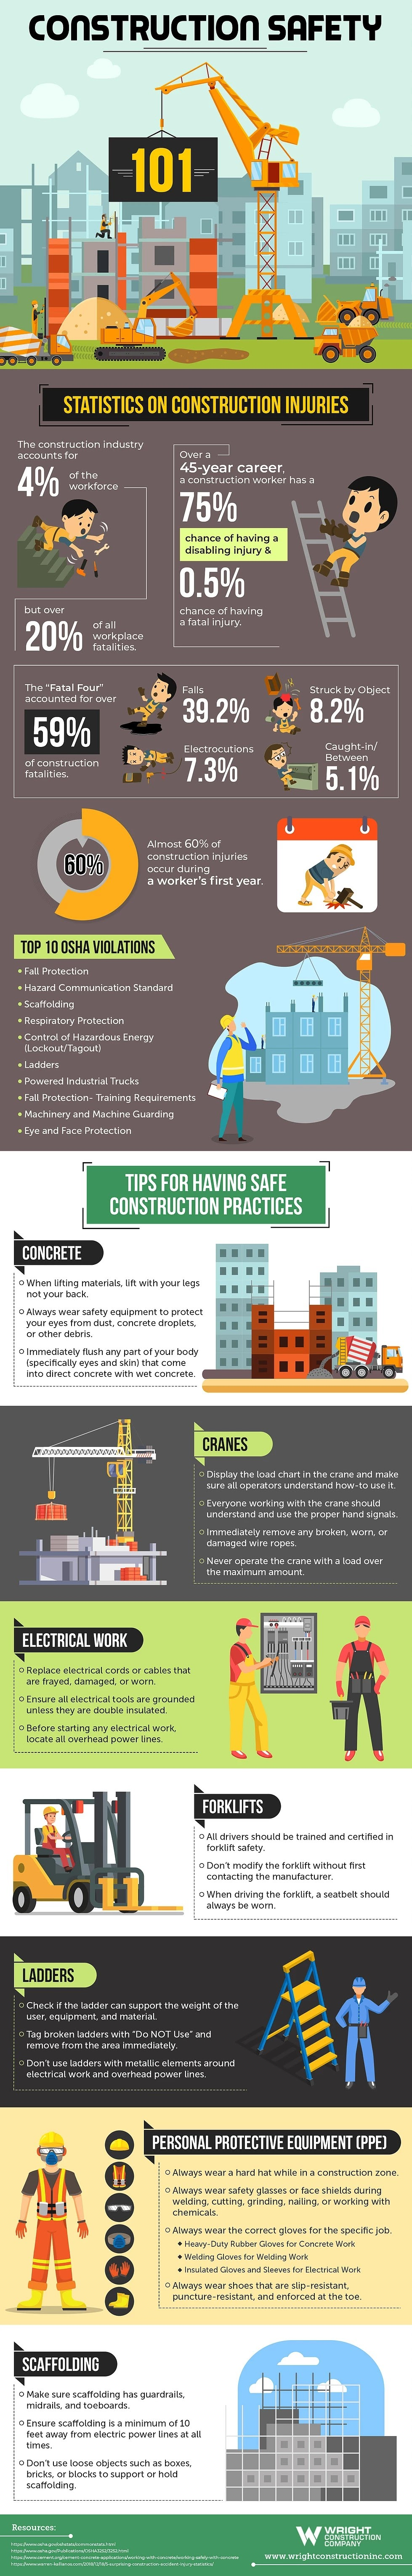 Construction Safety 101 #infographic